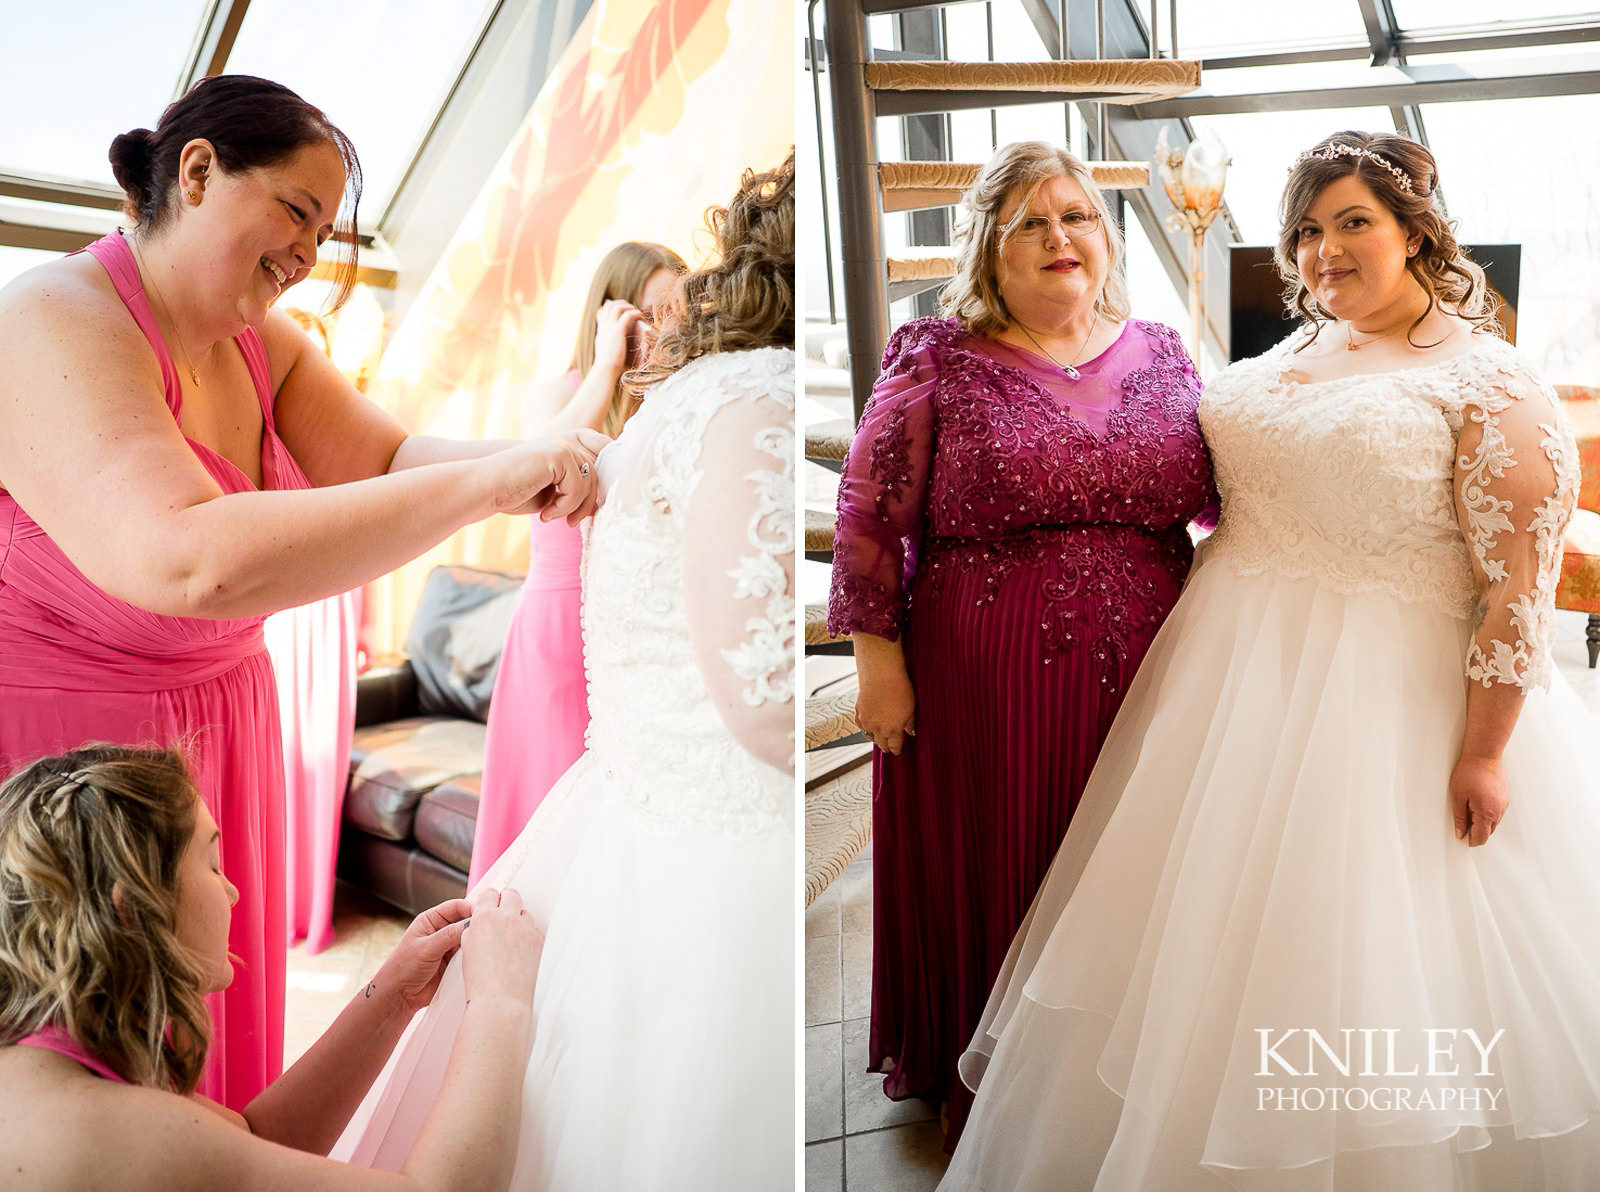 010 - Woodcliff Hotel - Rochester NY wedding photo - Kniley Photography.jpg